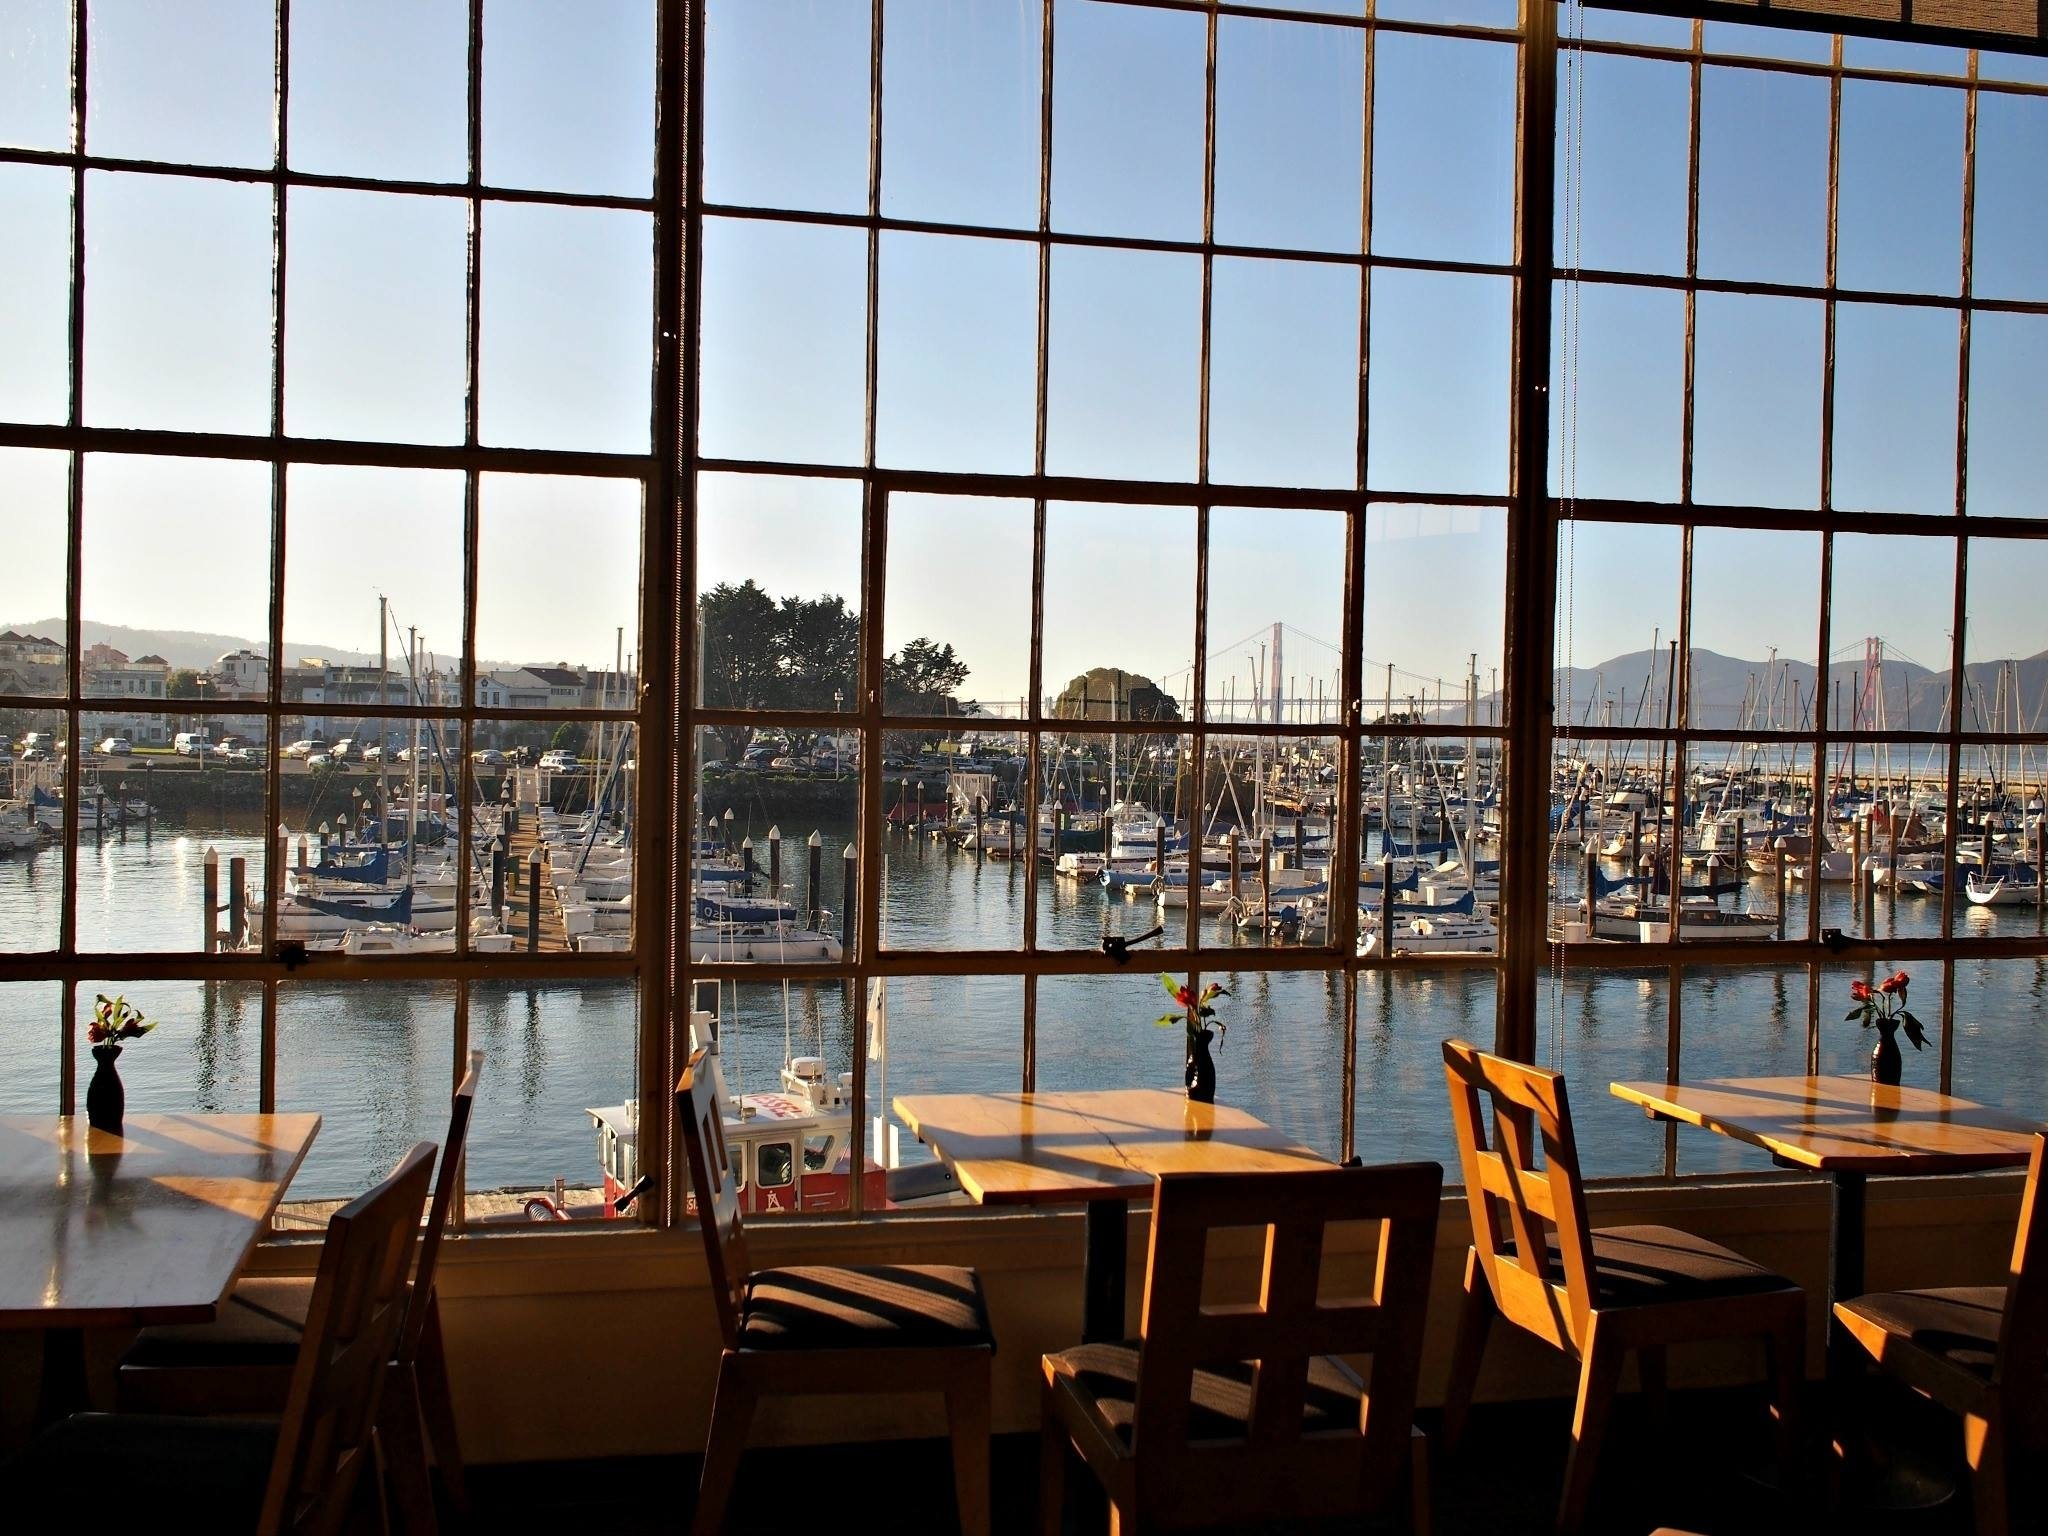 10 Stunning Date Ideas In San Francisco the best date spots in cow hollow and the marina 2020